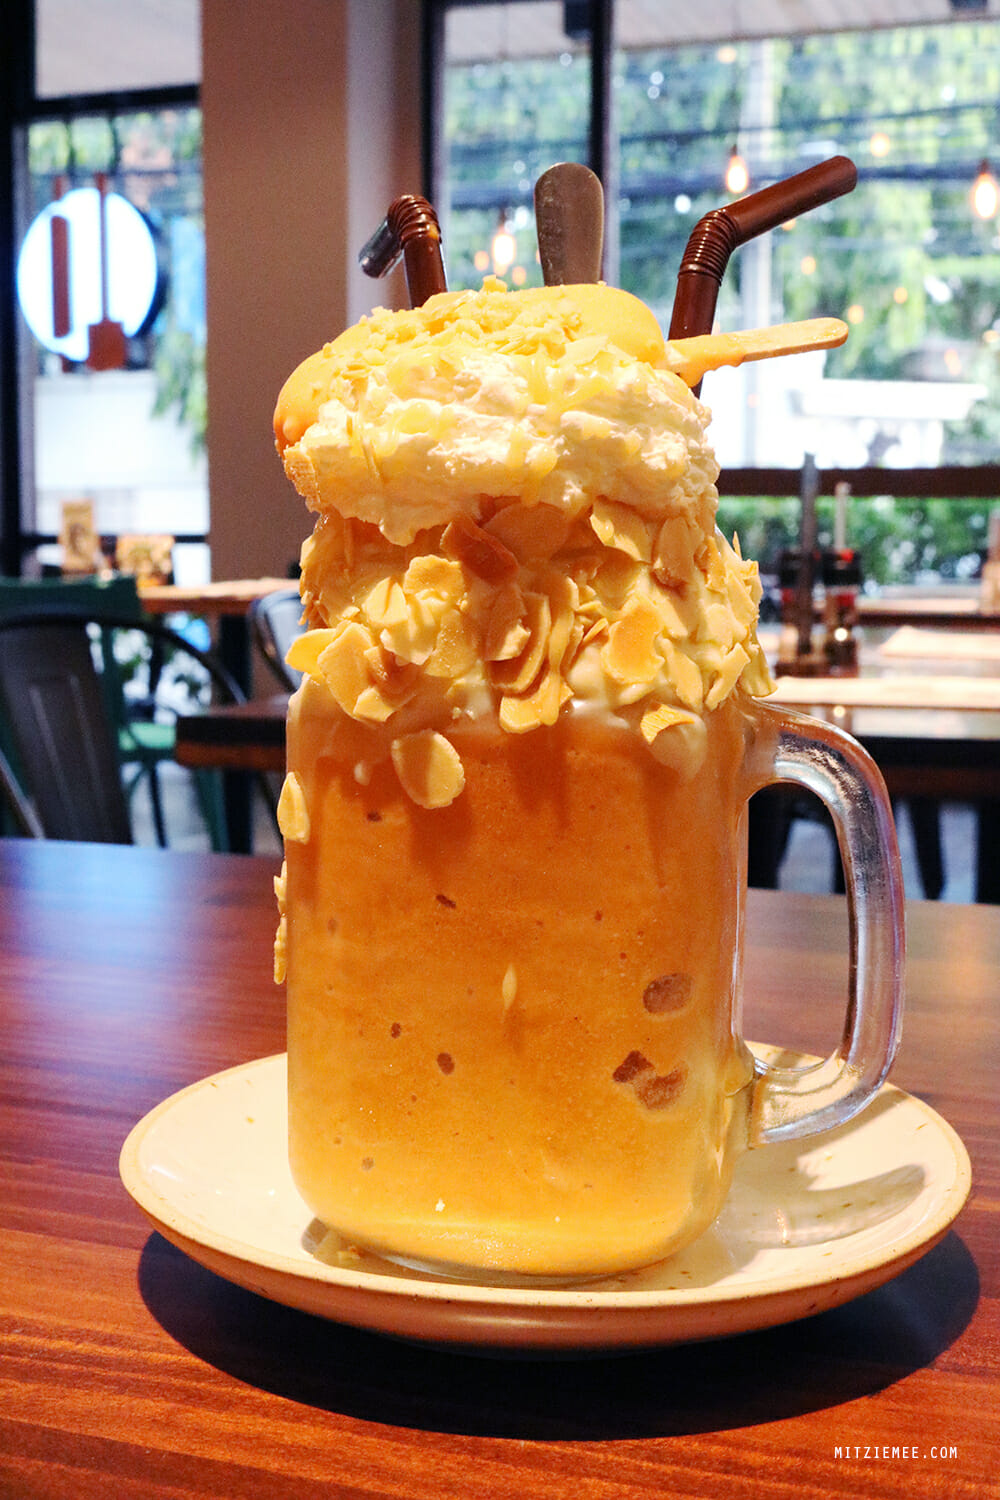 The FreakShake at Patissez, bangkok